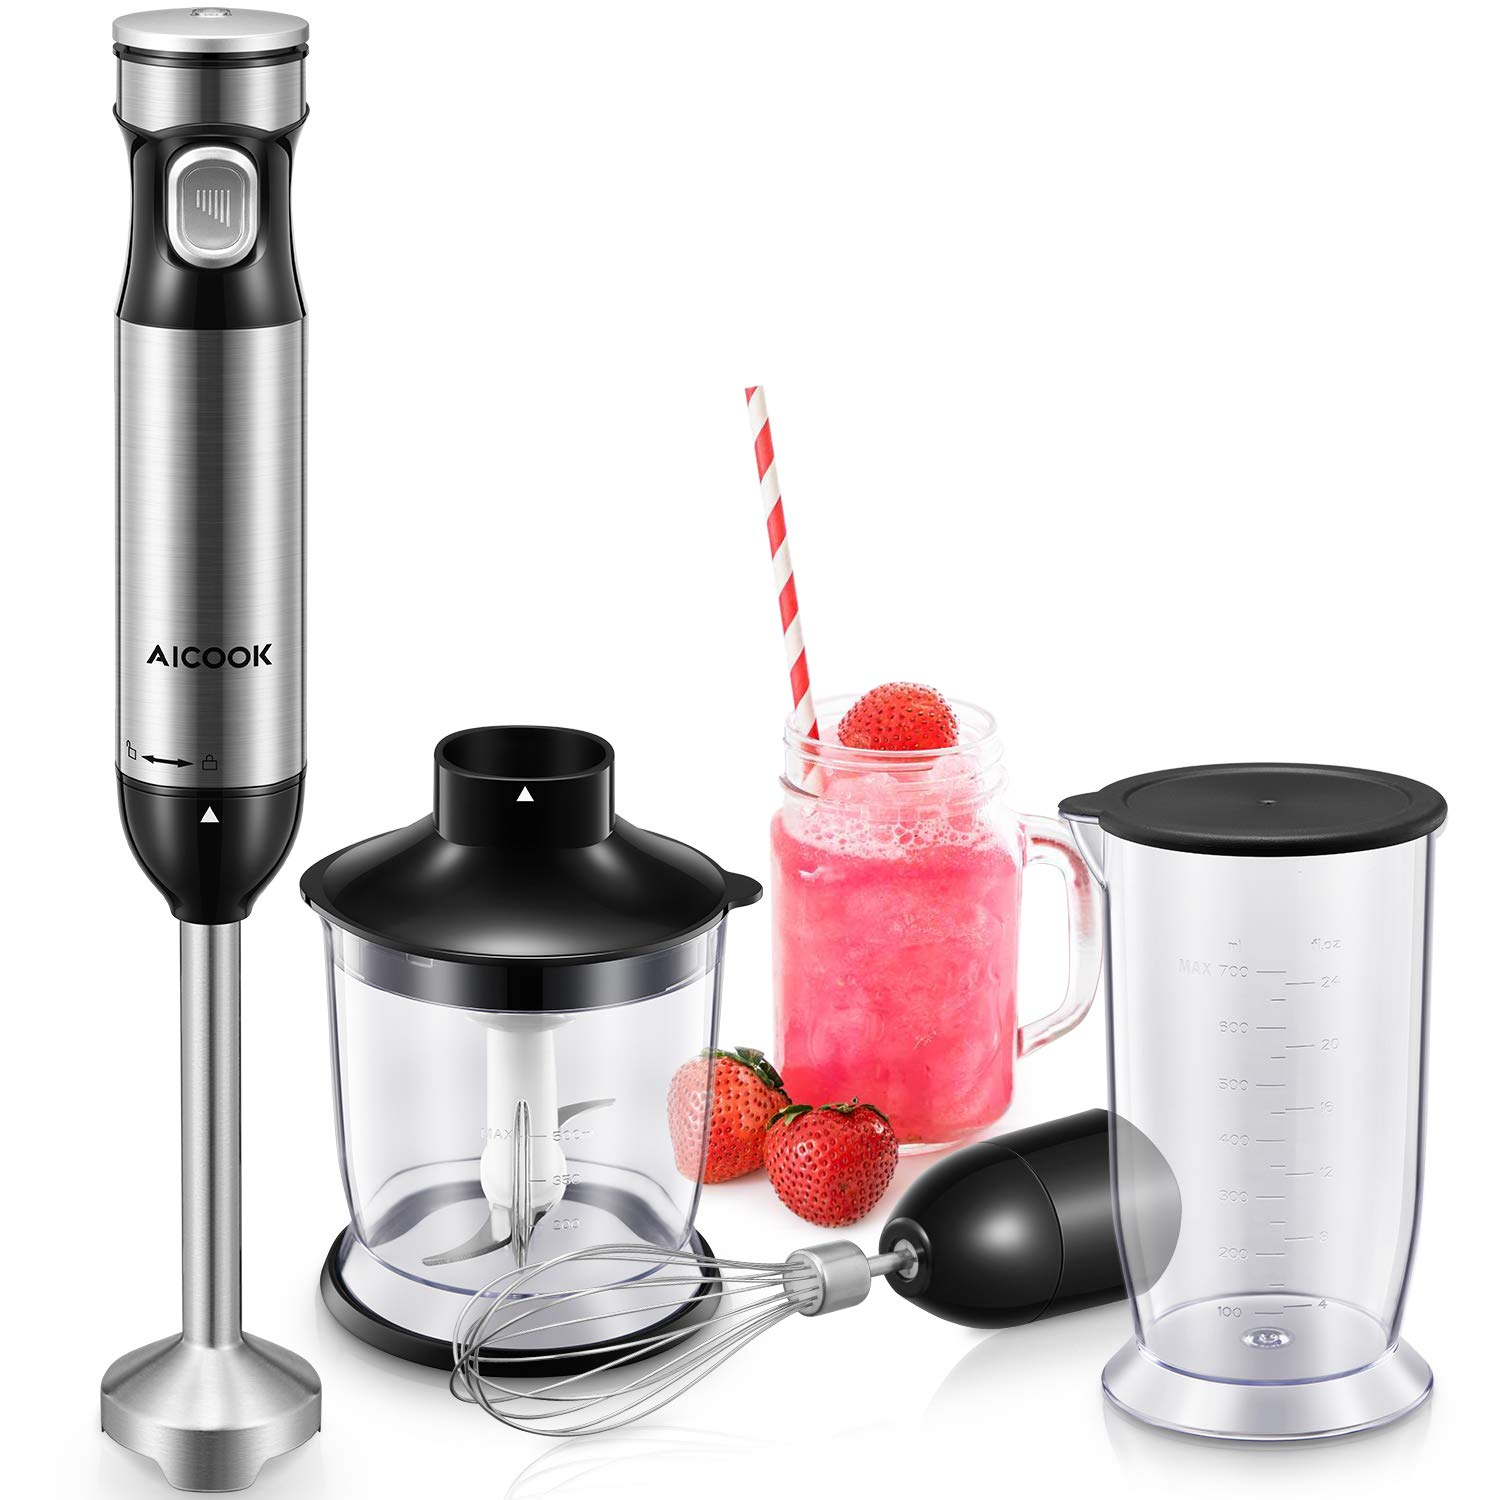 Hand Blender, Powerful Immersion with Smart Stepless Speed Regulation, Aicook 4-in-1 Immersion Hand Blender